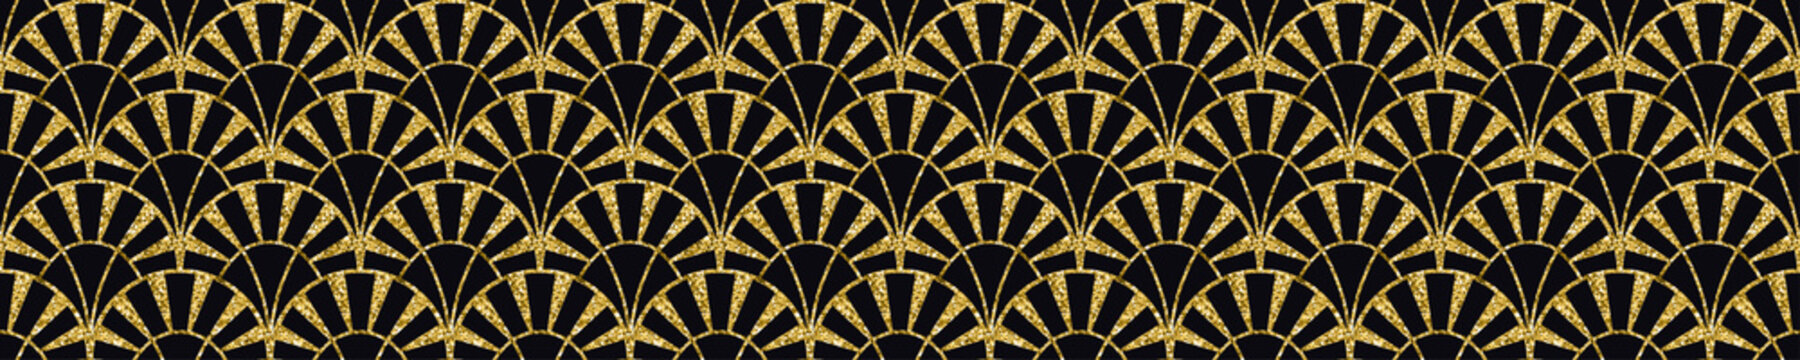 Modern tiles pattern. Abstract art deco seamless background with glitter texture